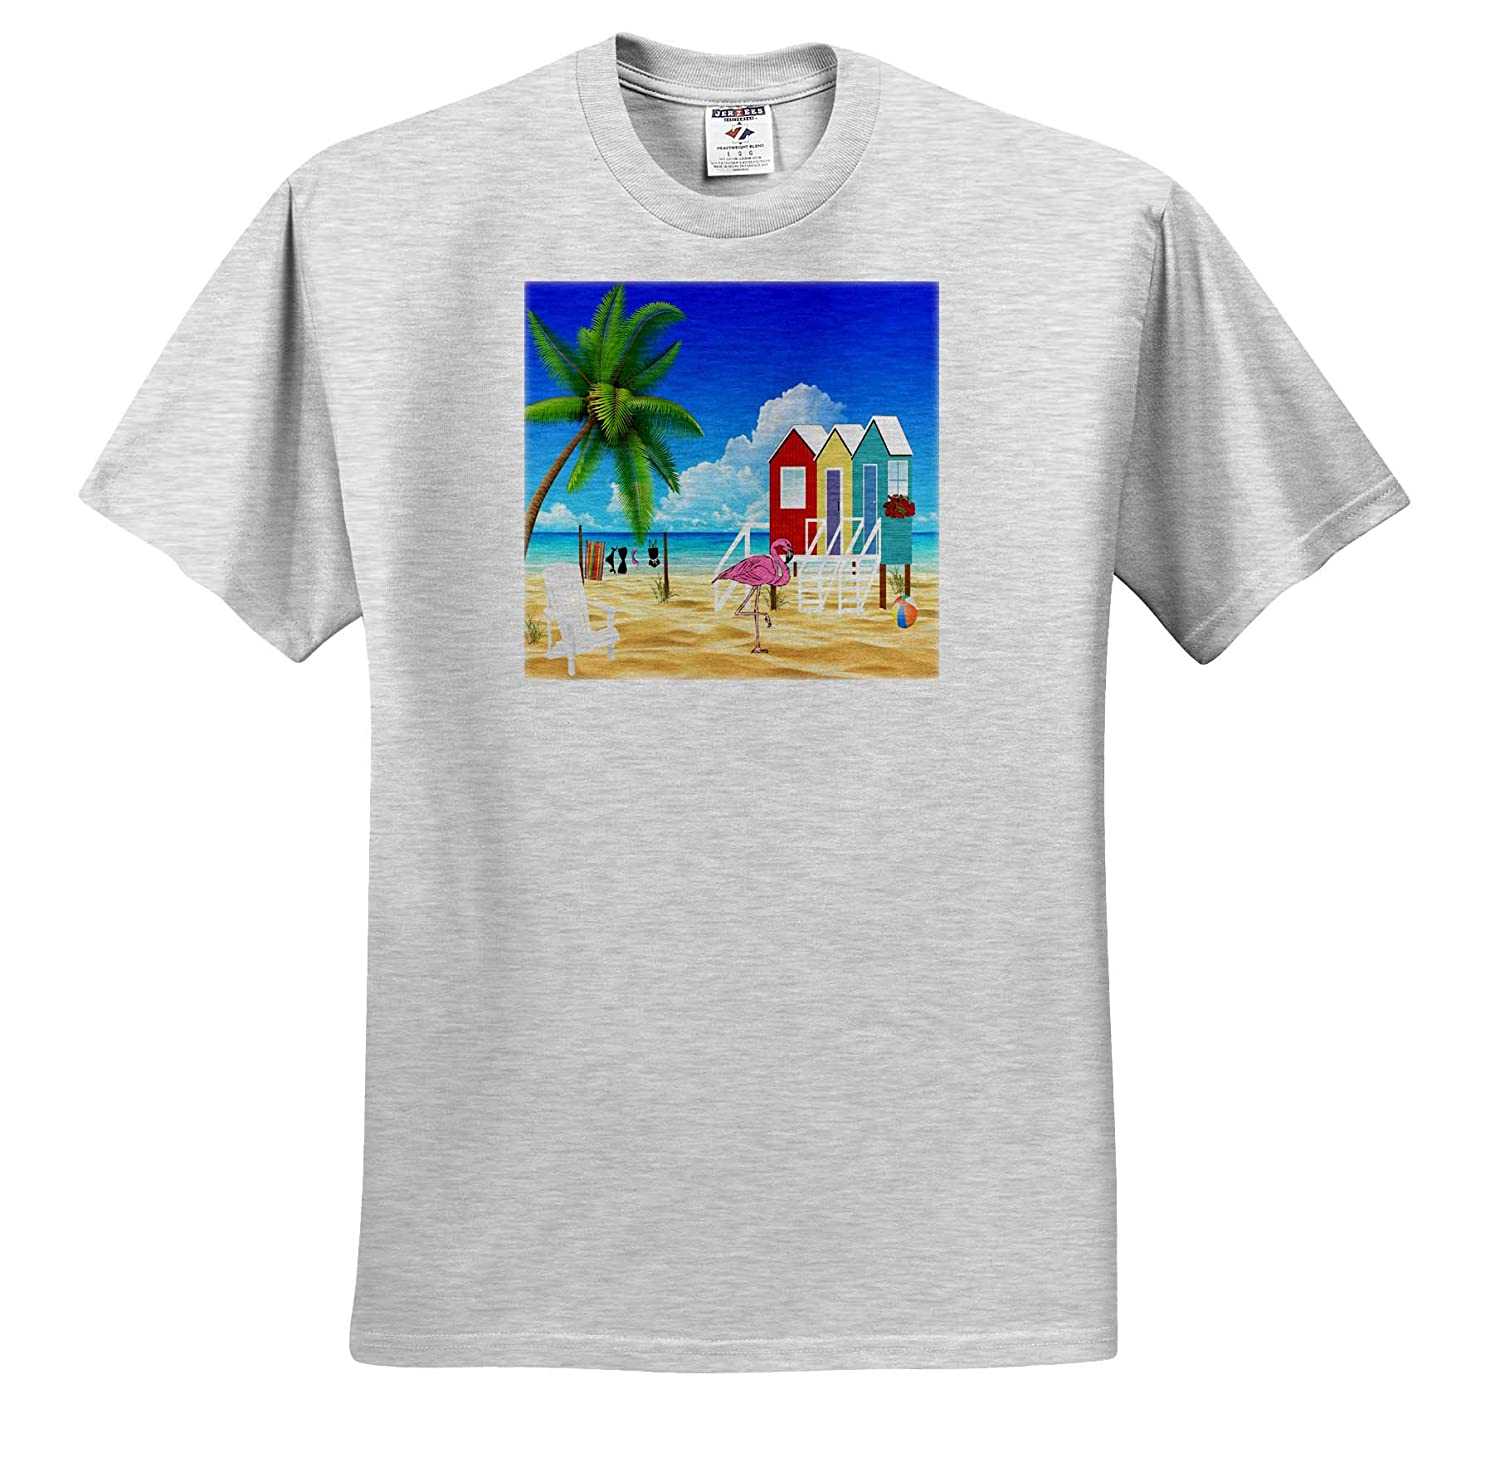 Image of Beach Scene with Flamingo Ocean and Palm Tree Pineapple and Beach Art 3dRose Lens Art by Florene T-Shirts